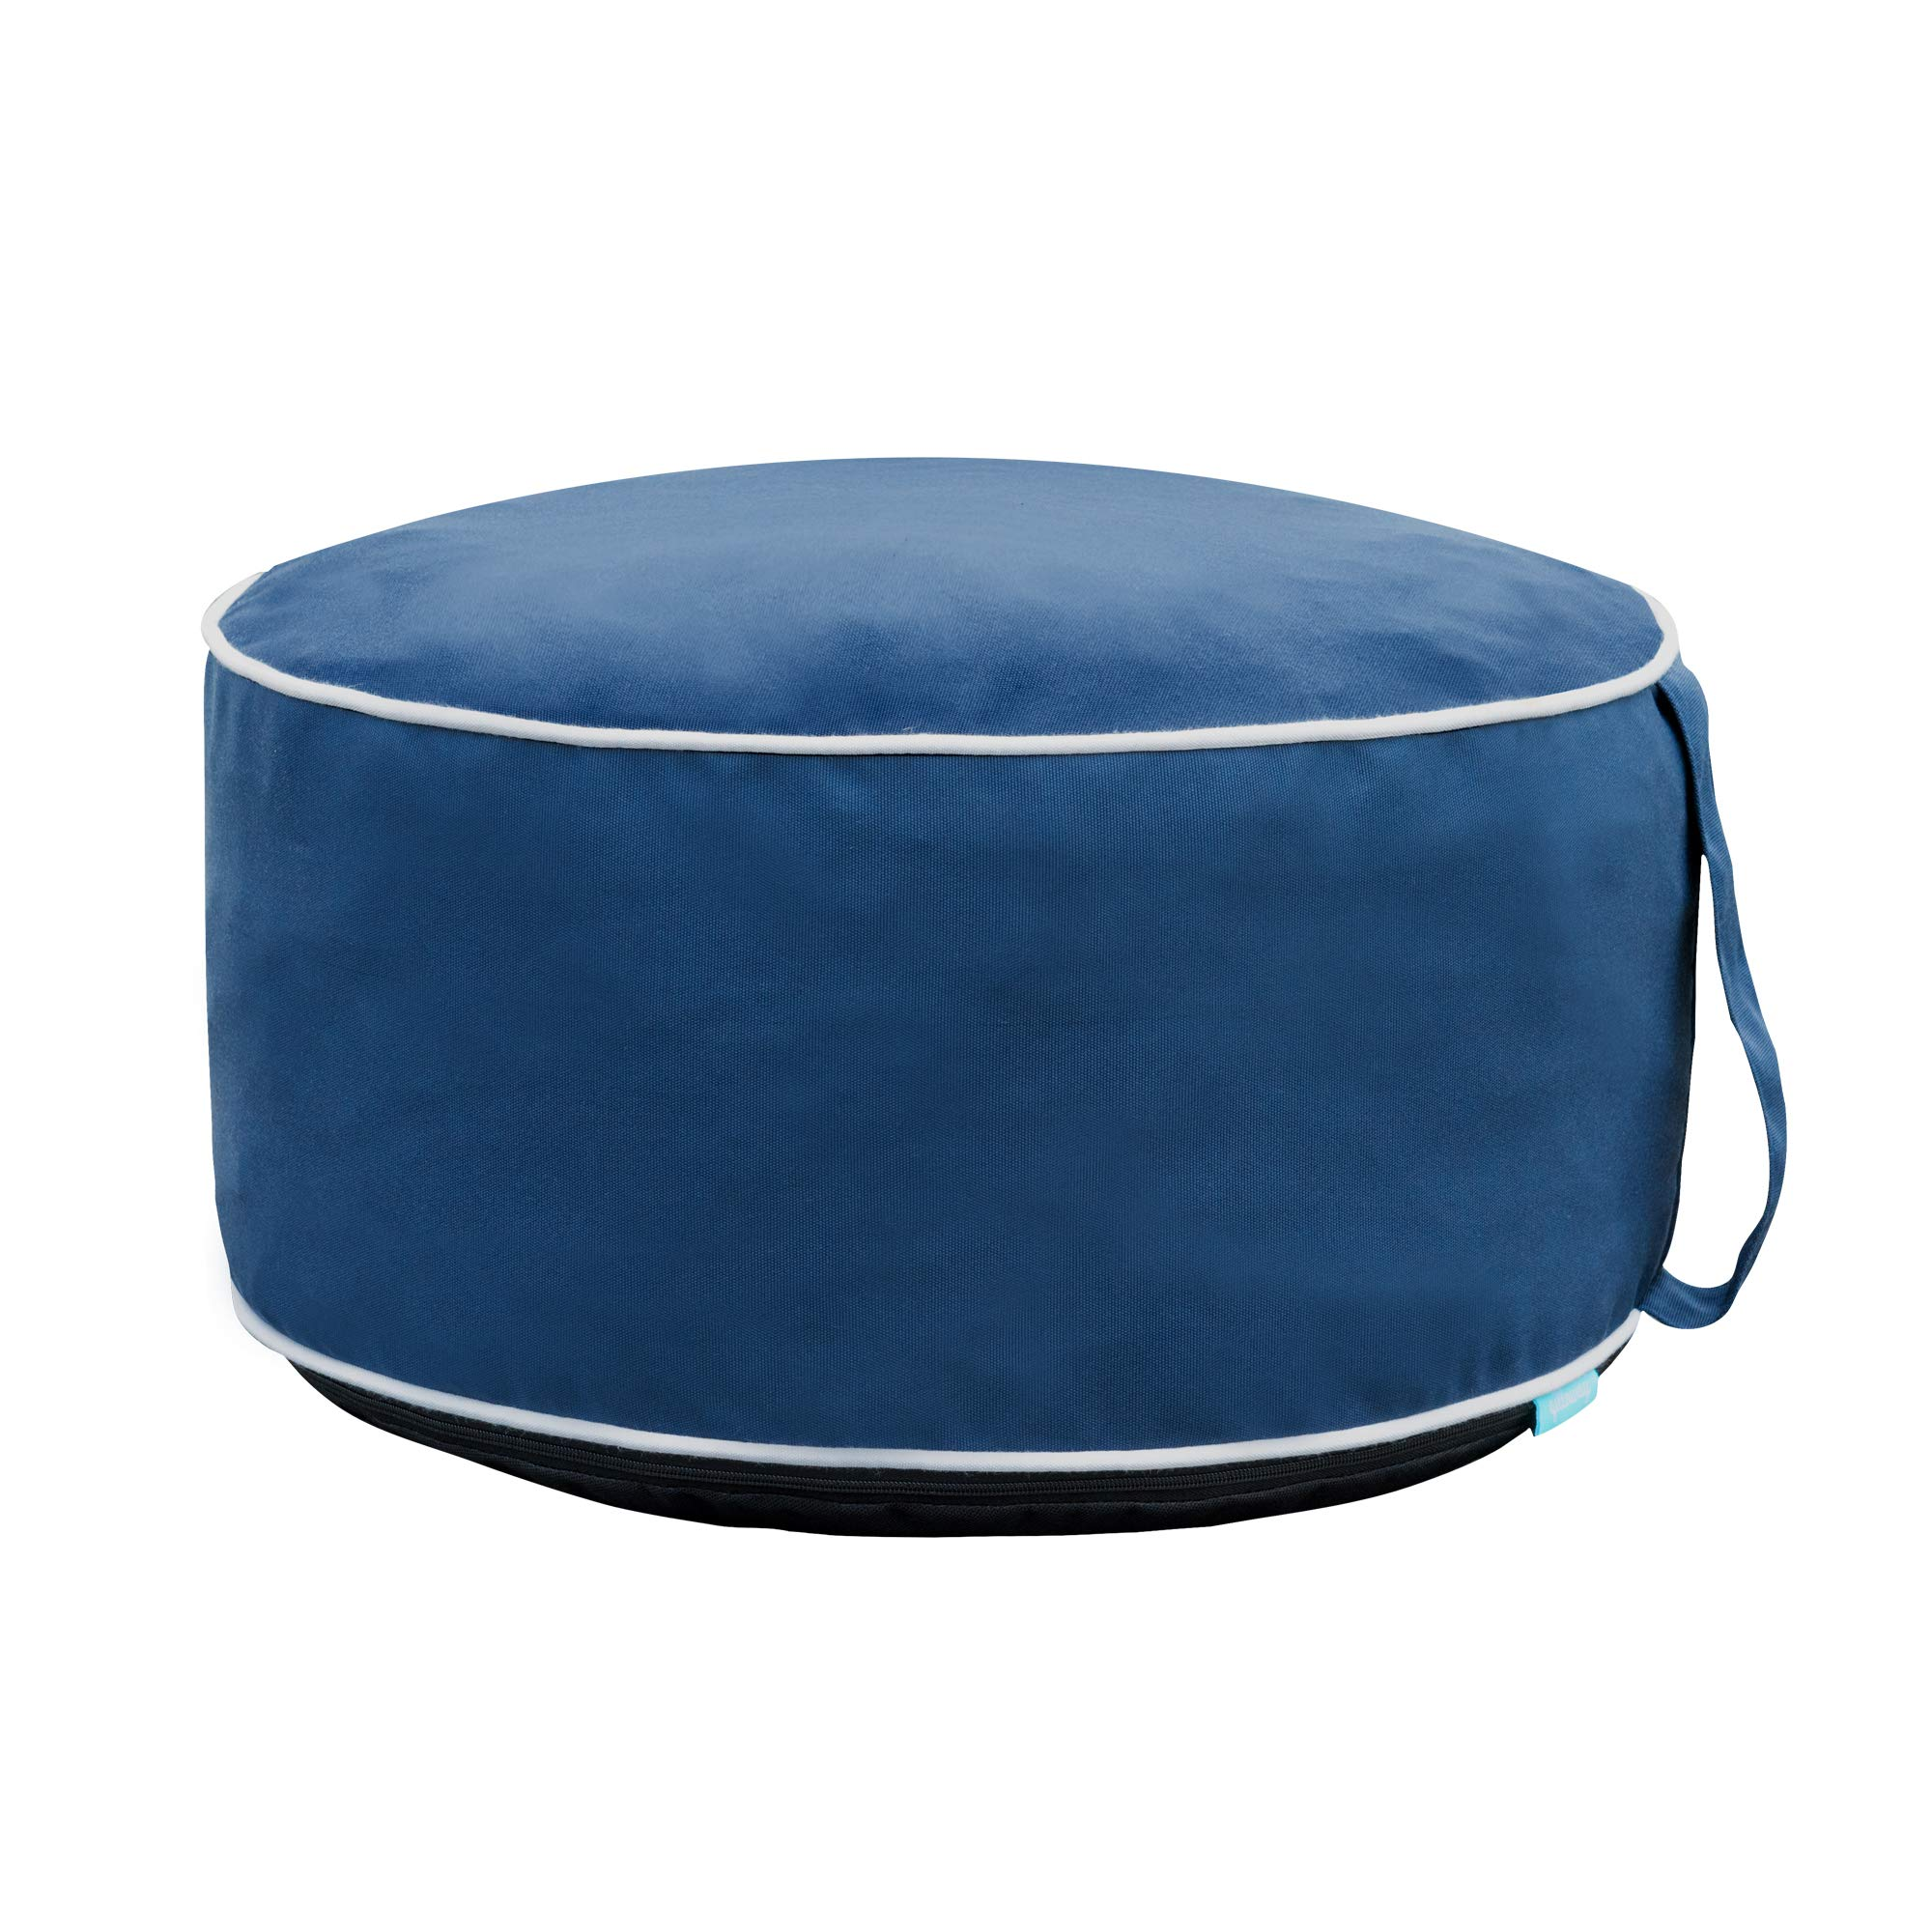 QILLOWAY Indoor/Outdoor Inflatable Stool,Round Ottoman,Foot Rest for Kids or Adults, Camping or Home (Navy Blue)